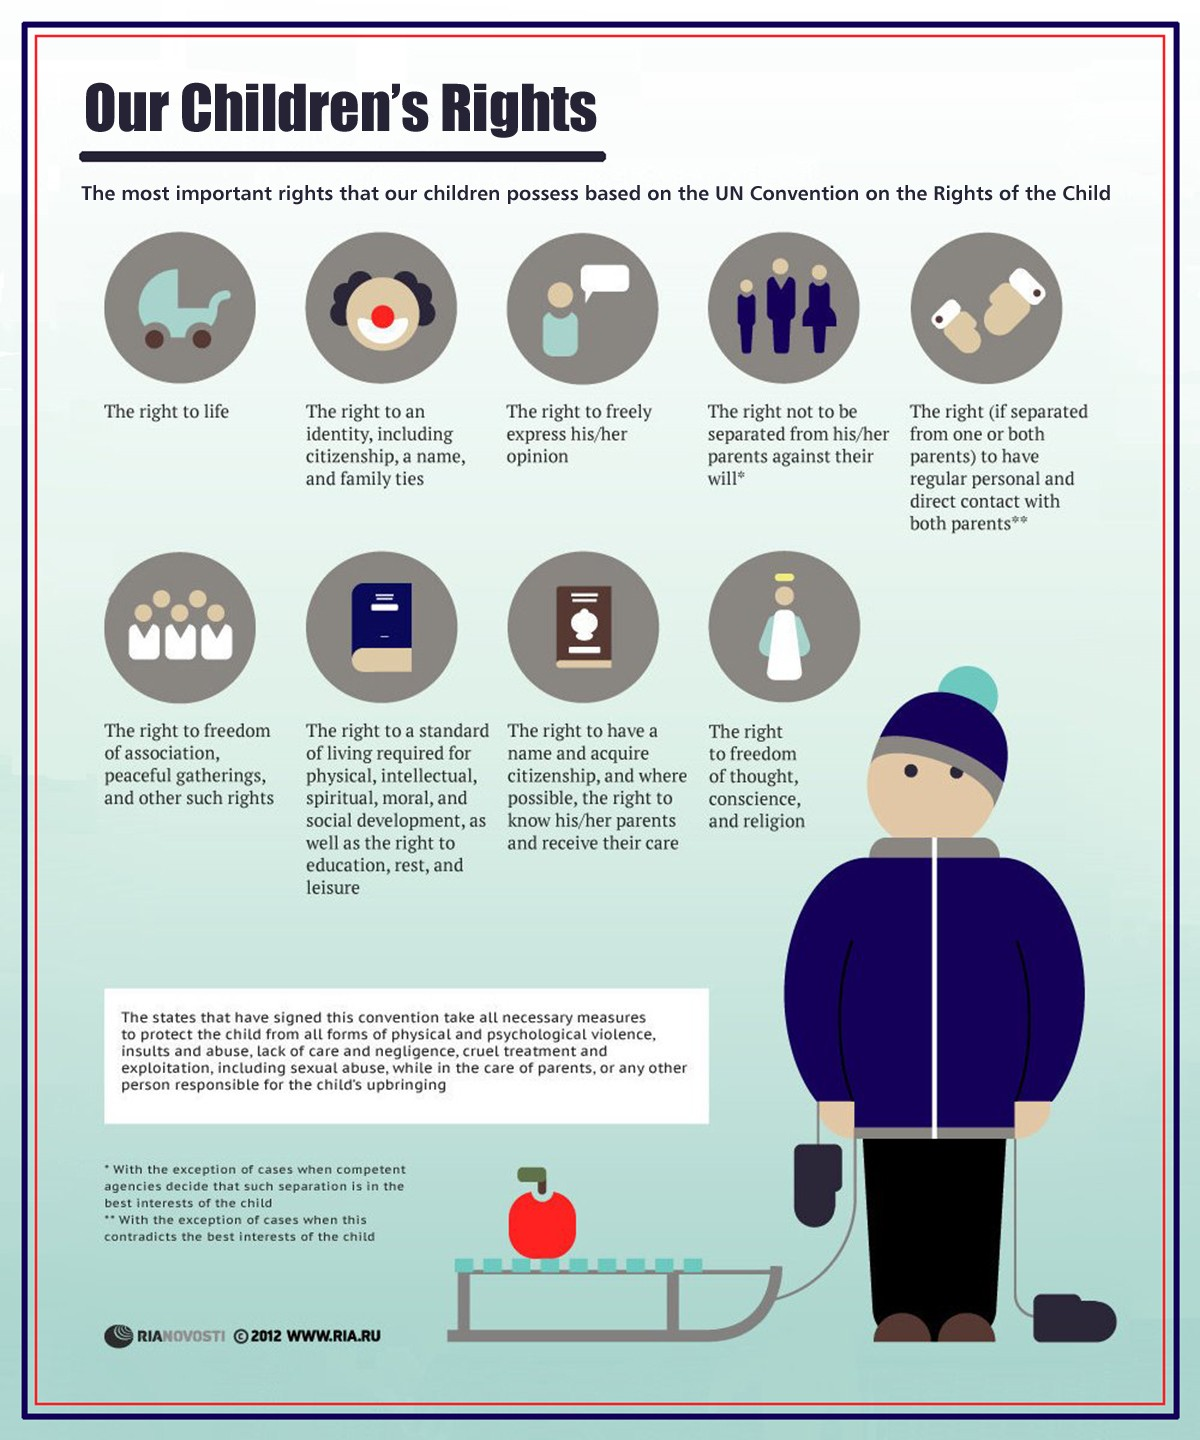 00 RIA-Novosti Infographics. Our Children's Rights. 2013